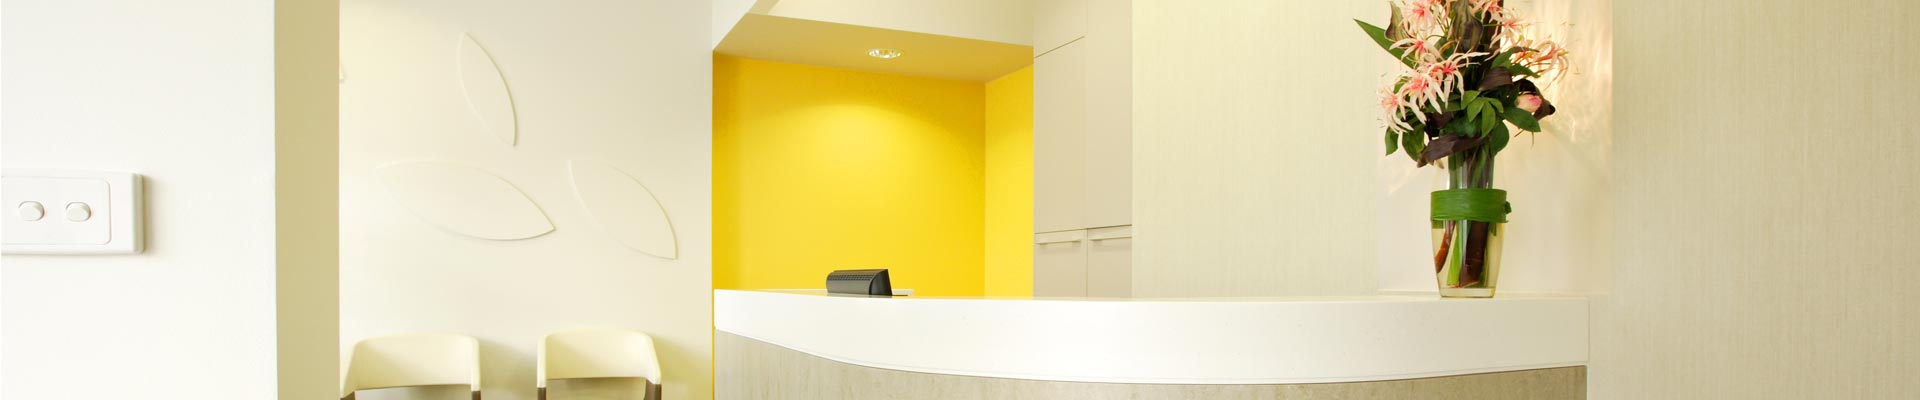 Medifit Design & Construct are the Dental Fitout Specialists